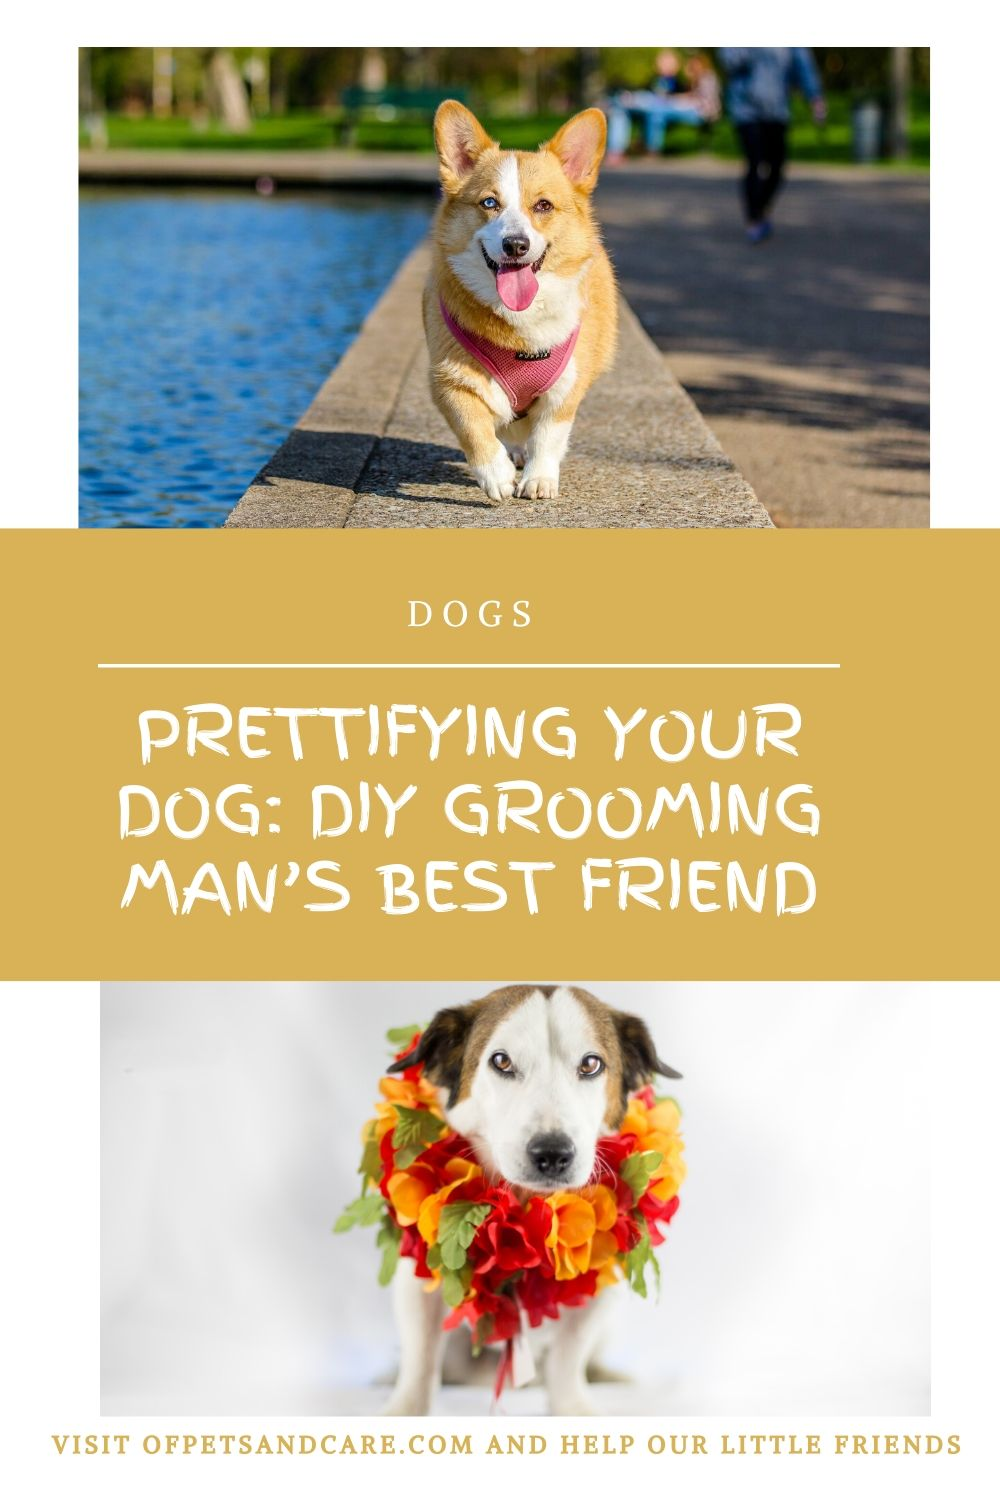 Prettifying Your Dog: DIY Grooming Man's Best Friend